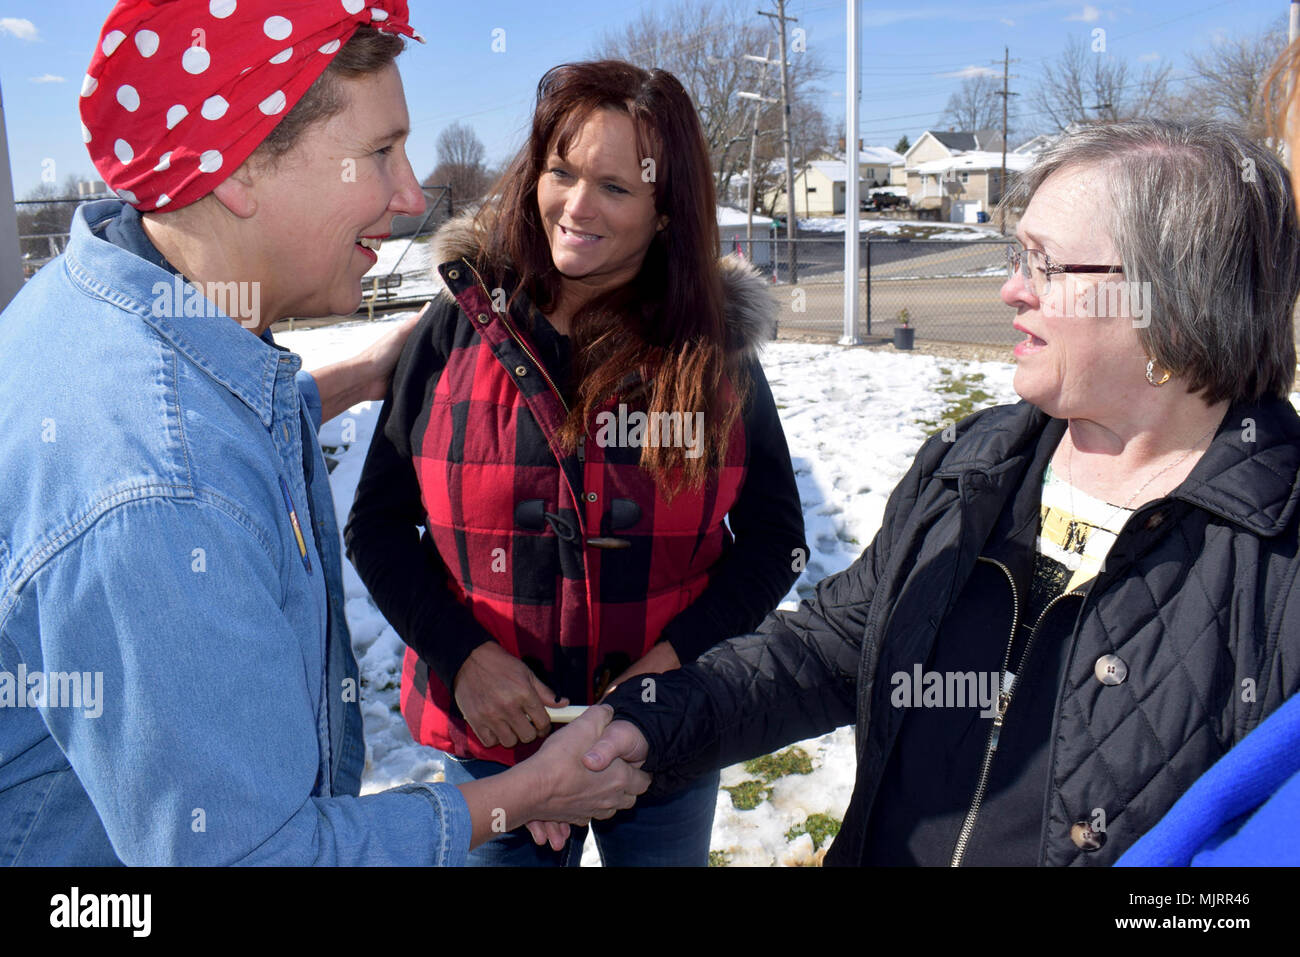 """Betty Wagner (center) and Brenda Corey (right) meet Angie Timan (left), event coordinator for the Rosie the Riveter Memorial Rose Garden Dedication ceremony in Bedford, Ind., March 21. Wagner and Corey are current Crane Army Ammunition Activity employees and carry on the legacy of the """"Rosies"""" who worked at the base during World War II and the post-war era. Armed Forces and civilians displaying courage bravery dedication commitment and sacrifice - Stock Image"""